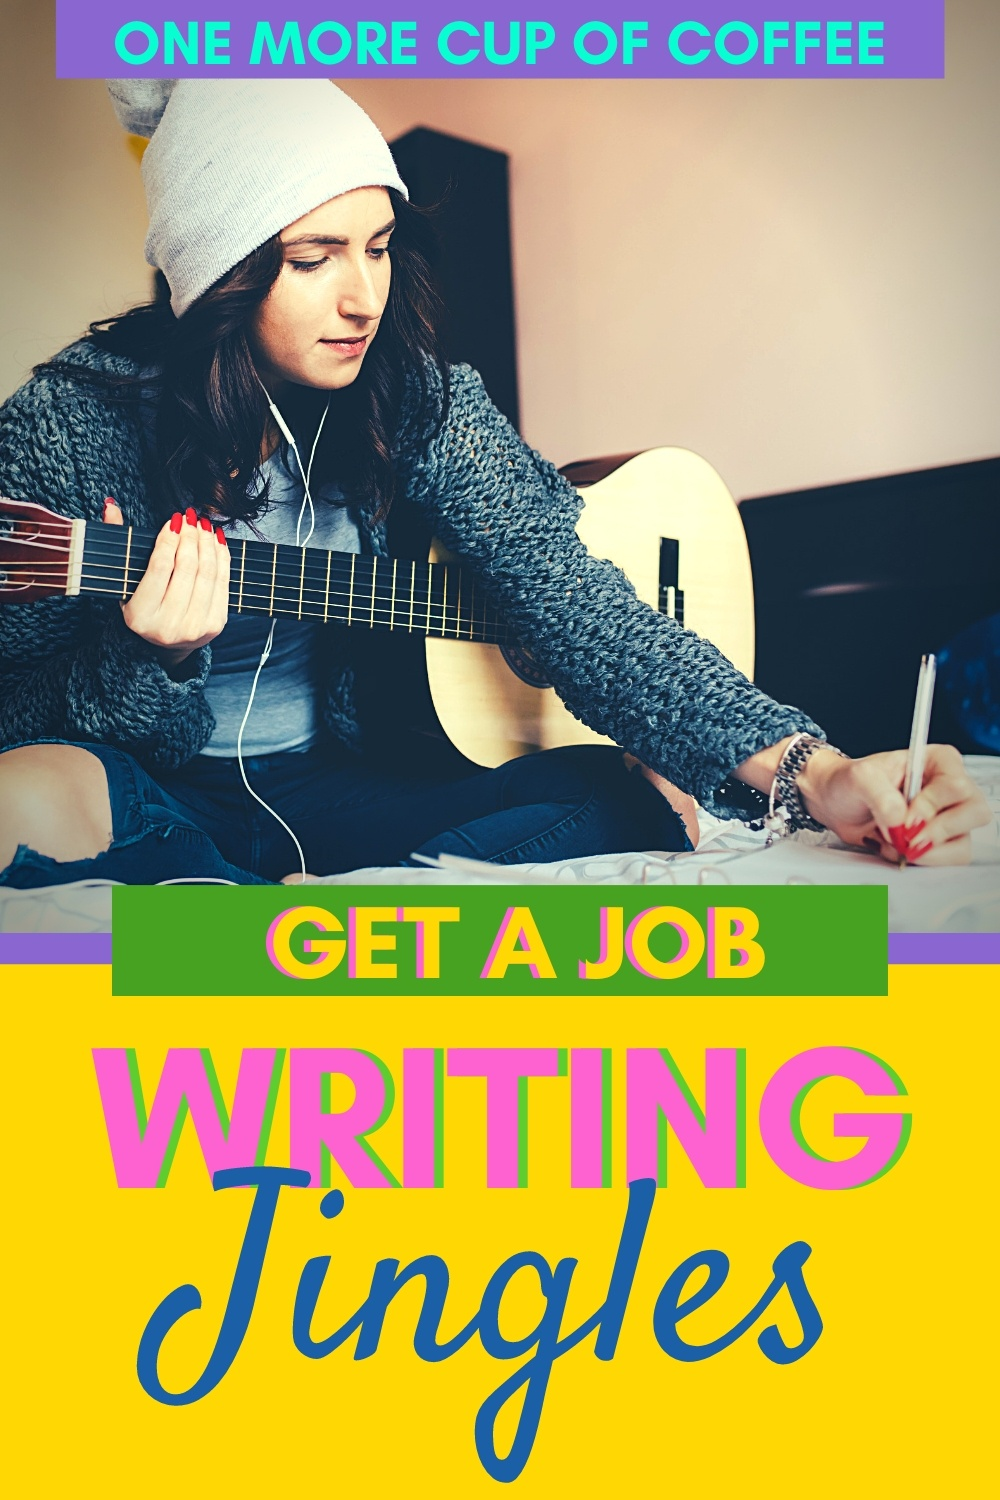 Woman songwriting with a guitar to illustrate getting a job writing jingles.